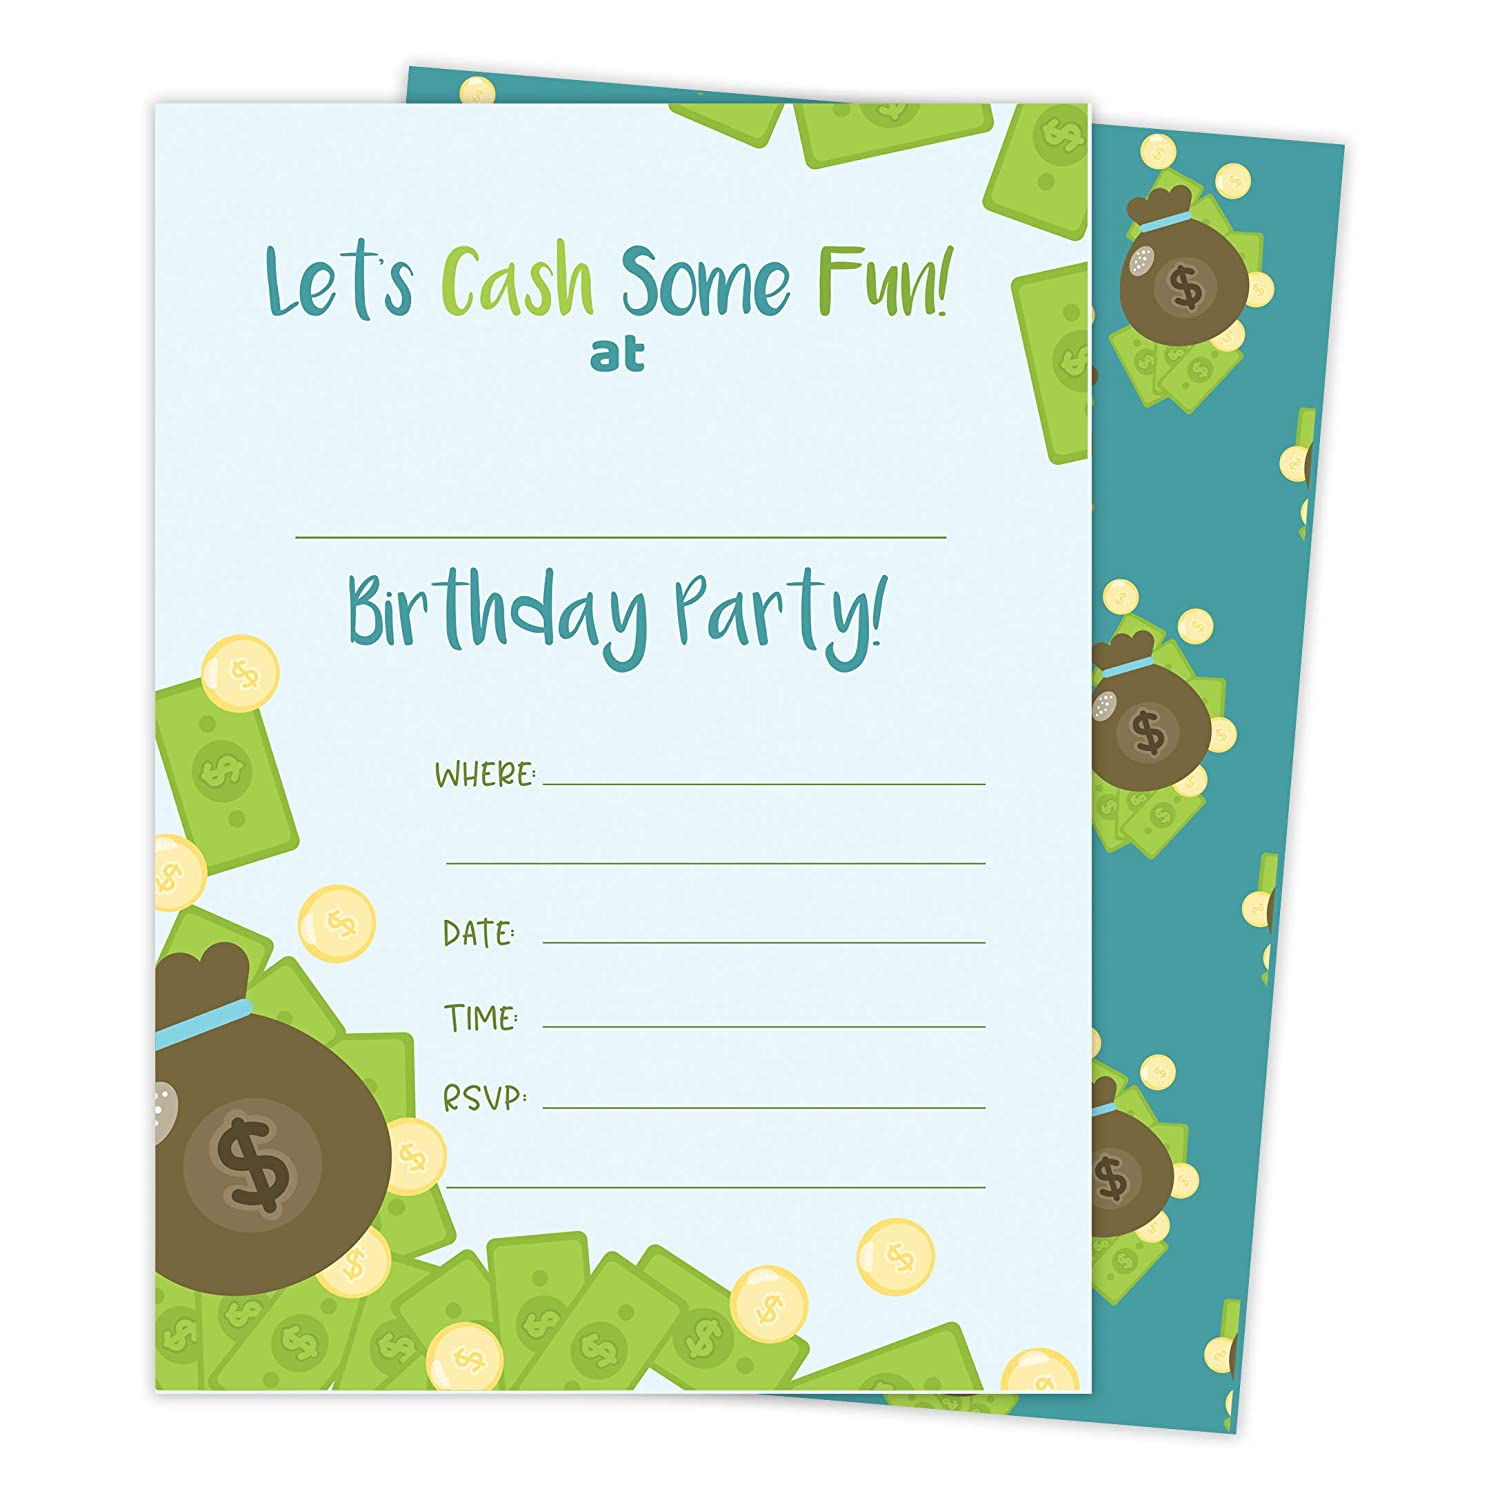 Cash Money 3 Happy Birthday Invitations Invite Cards 25 Count With Envelopes Seal Stickers Vinyl Boys Girls Kids Party